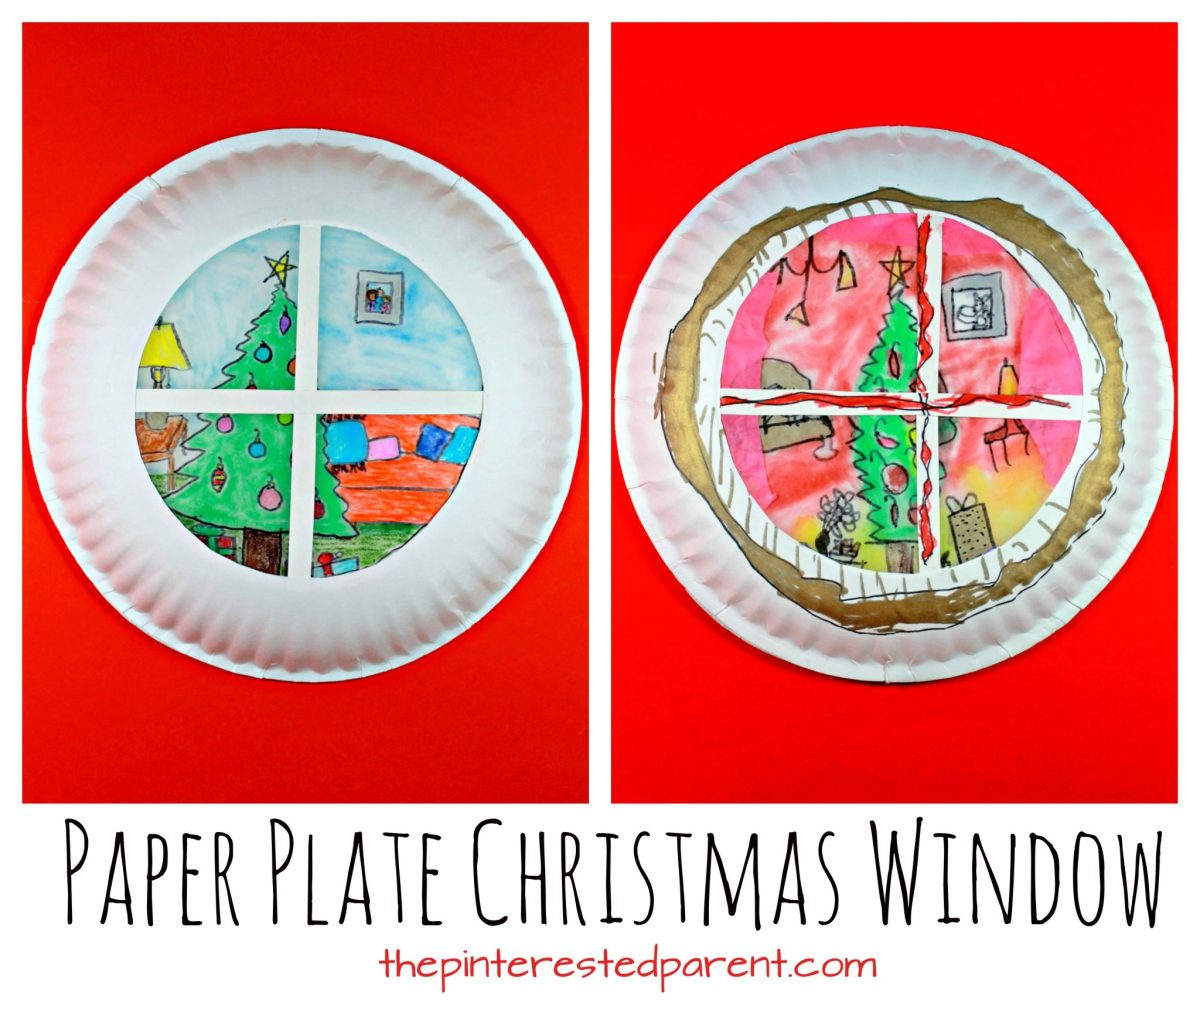 Paper Plate Suncatcher Christmas Window